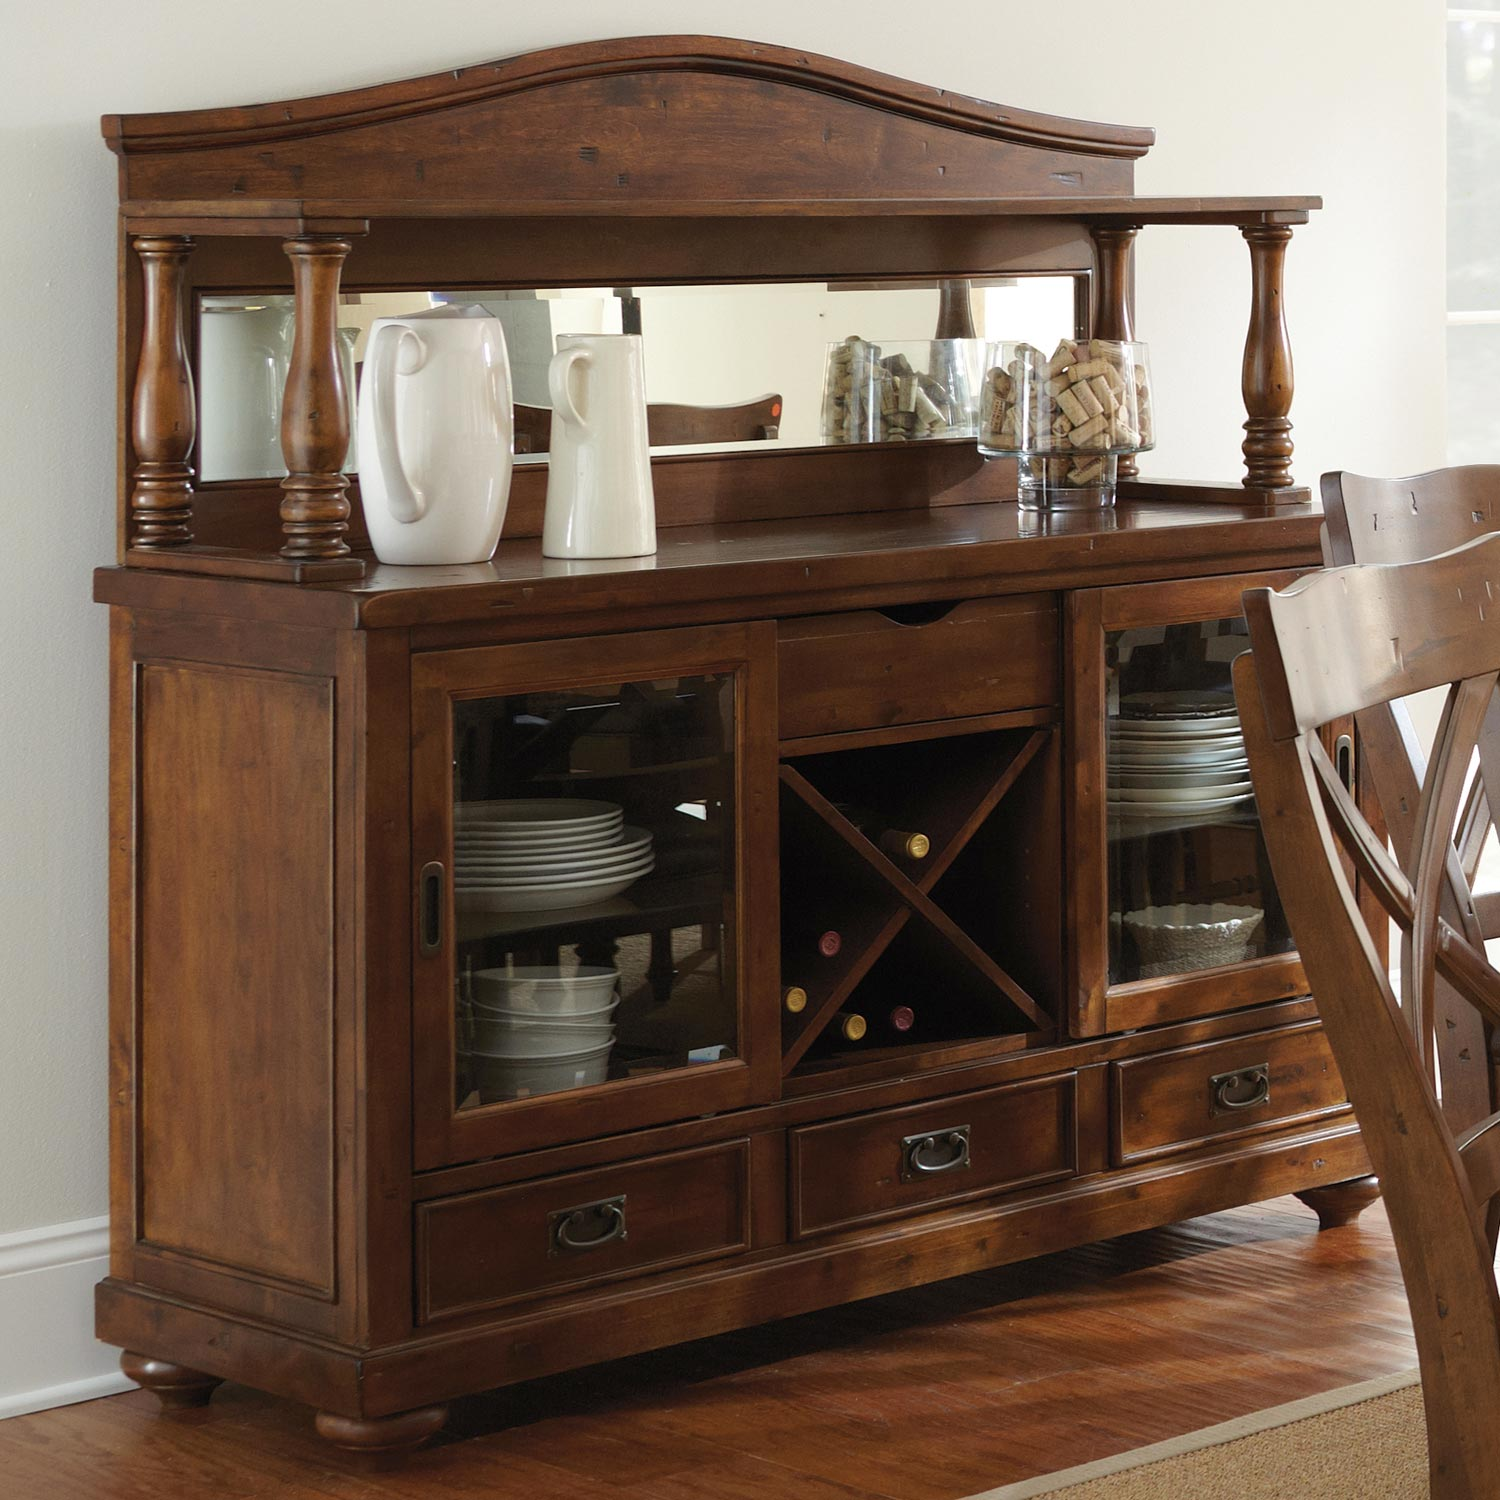 Dining Table And Hutch Set: Wyndham Extension Dining Set